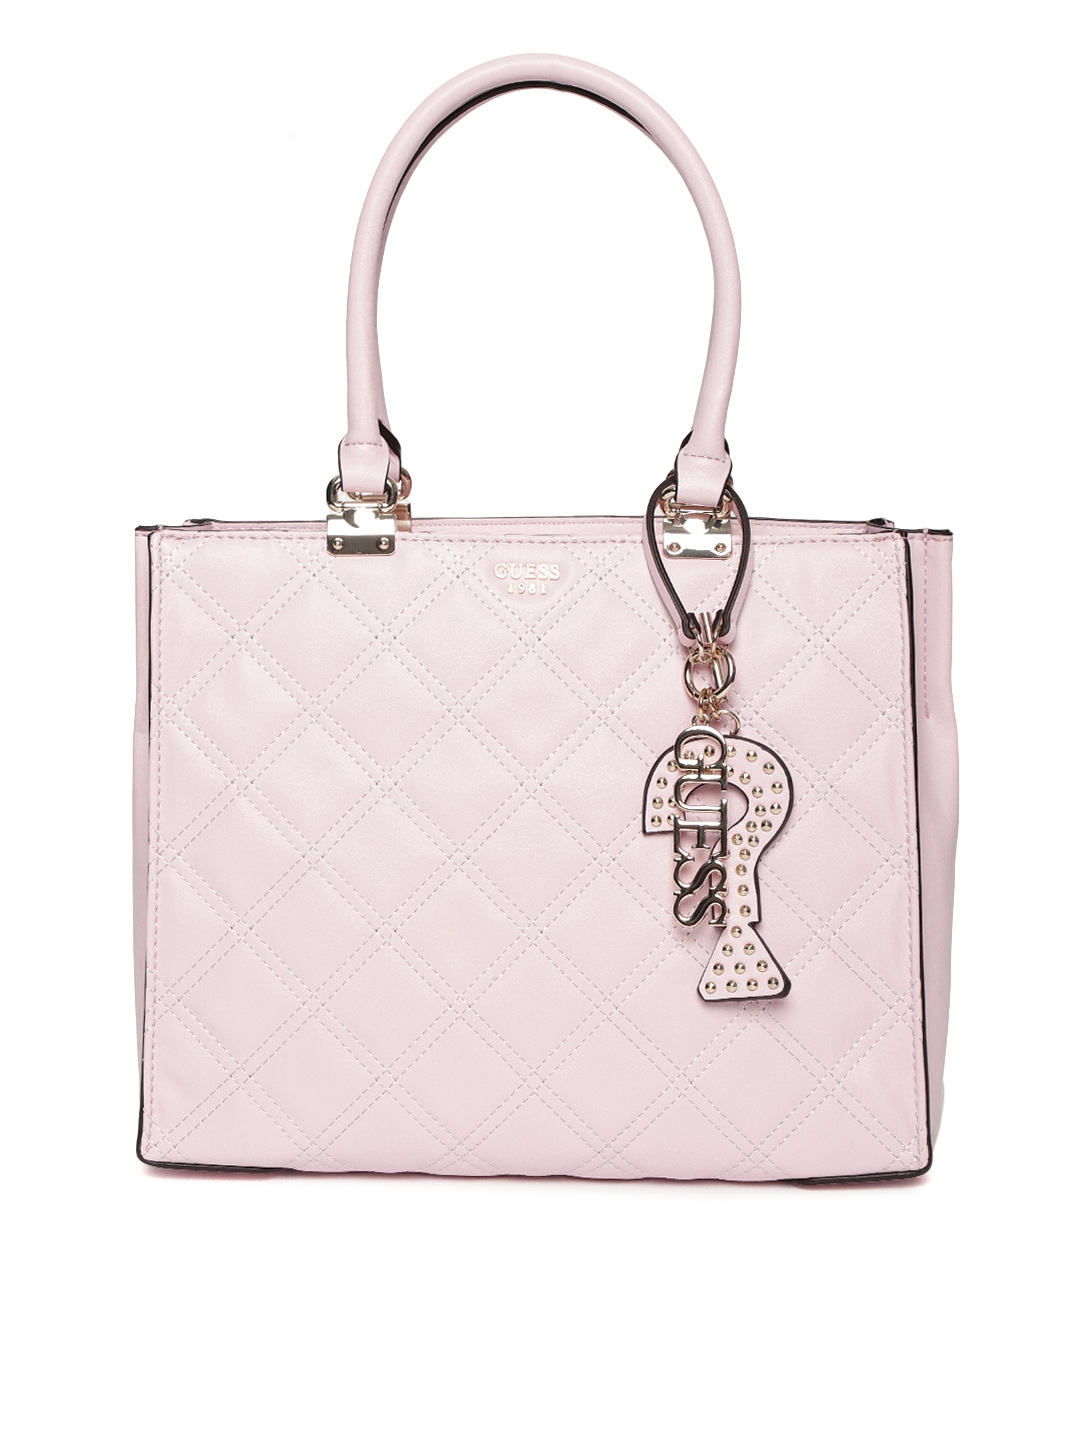 280e31123 Buy GUESS Pink Quilted Shoulder Bag - Handbags for Women 8381519 ...